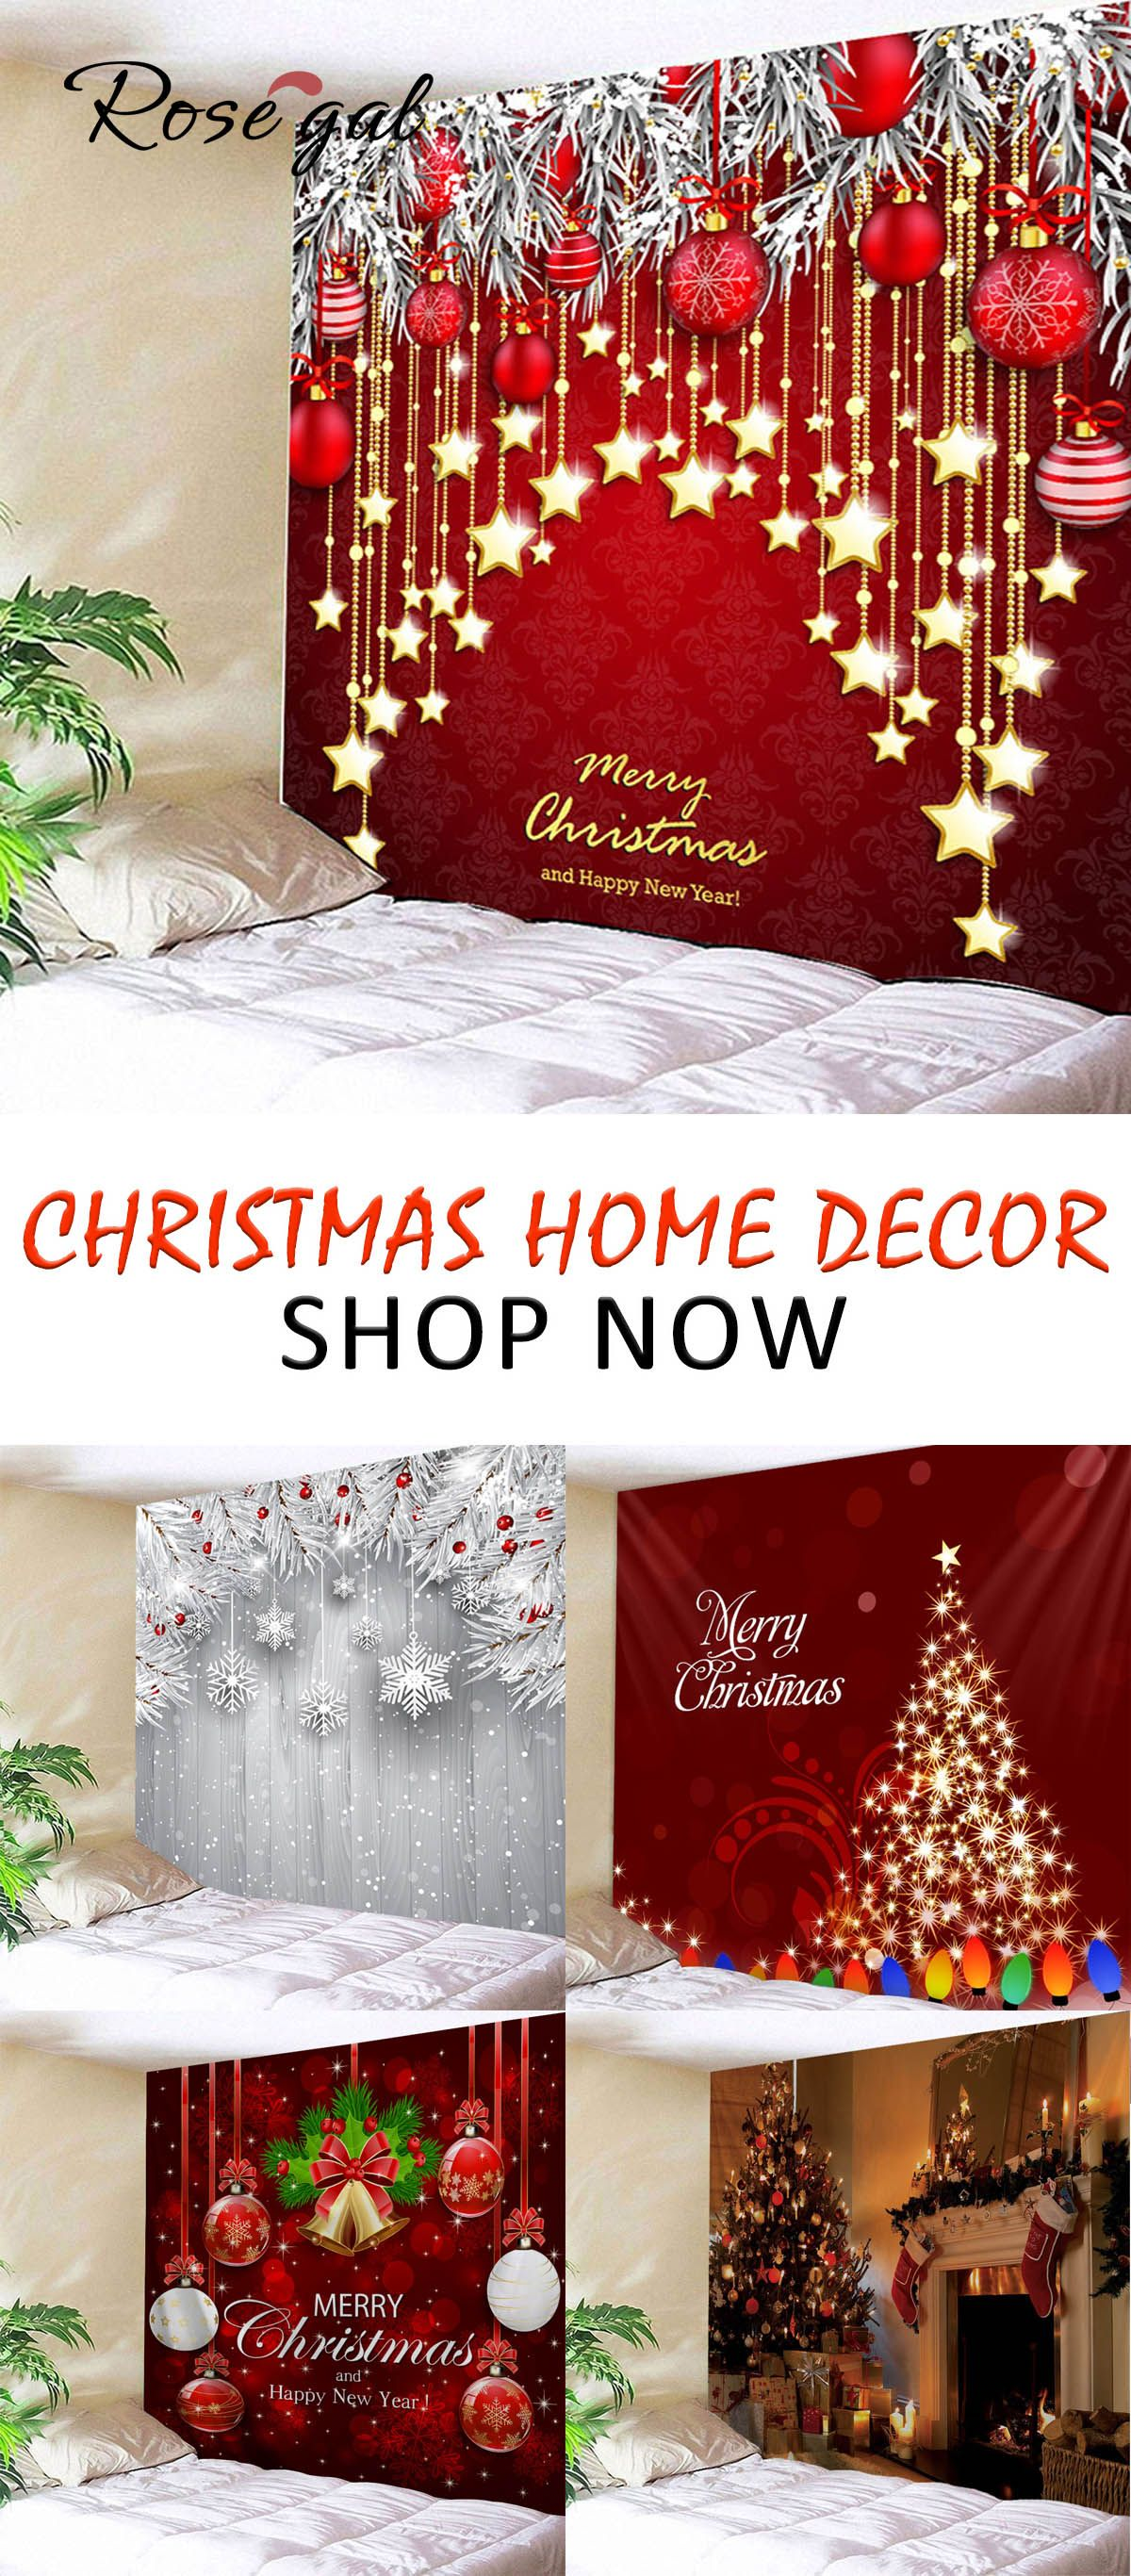 Use Code Free72 To Get Free Shipping Ends In 72 Hours Rosegal Christmas Home Decor Wall Decora Christmas Display Christmas Wall Decor Simple Christmas Decor